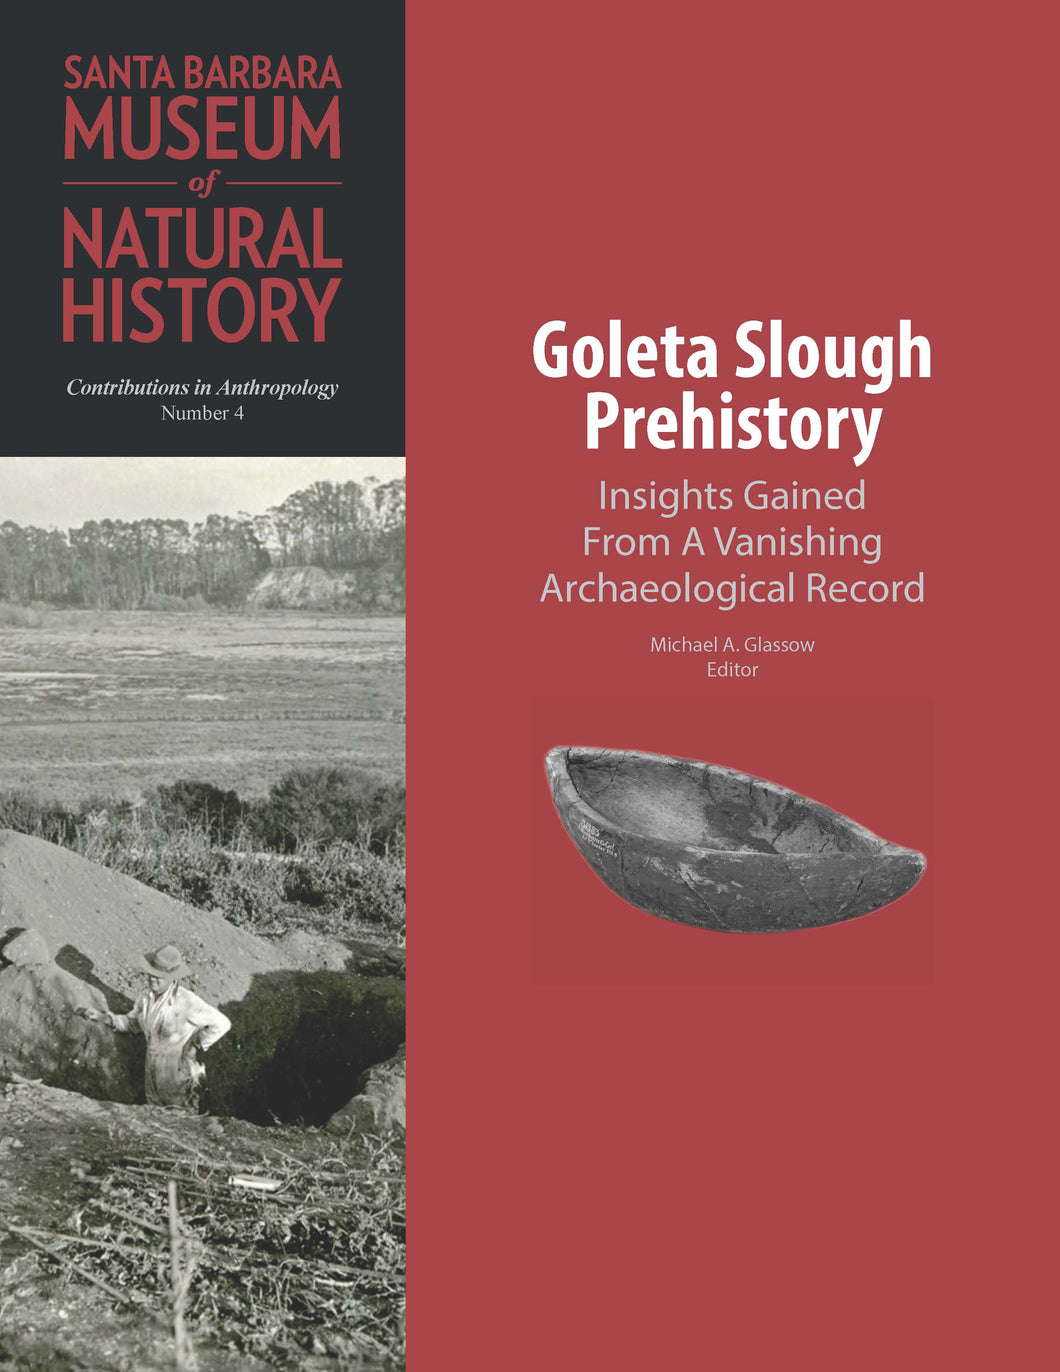 Goleta Slough Prehistory: Insights Gained From A Vanishing Archaeological Record